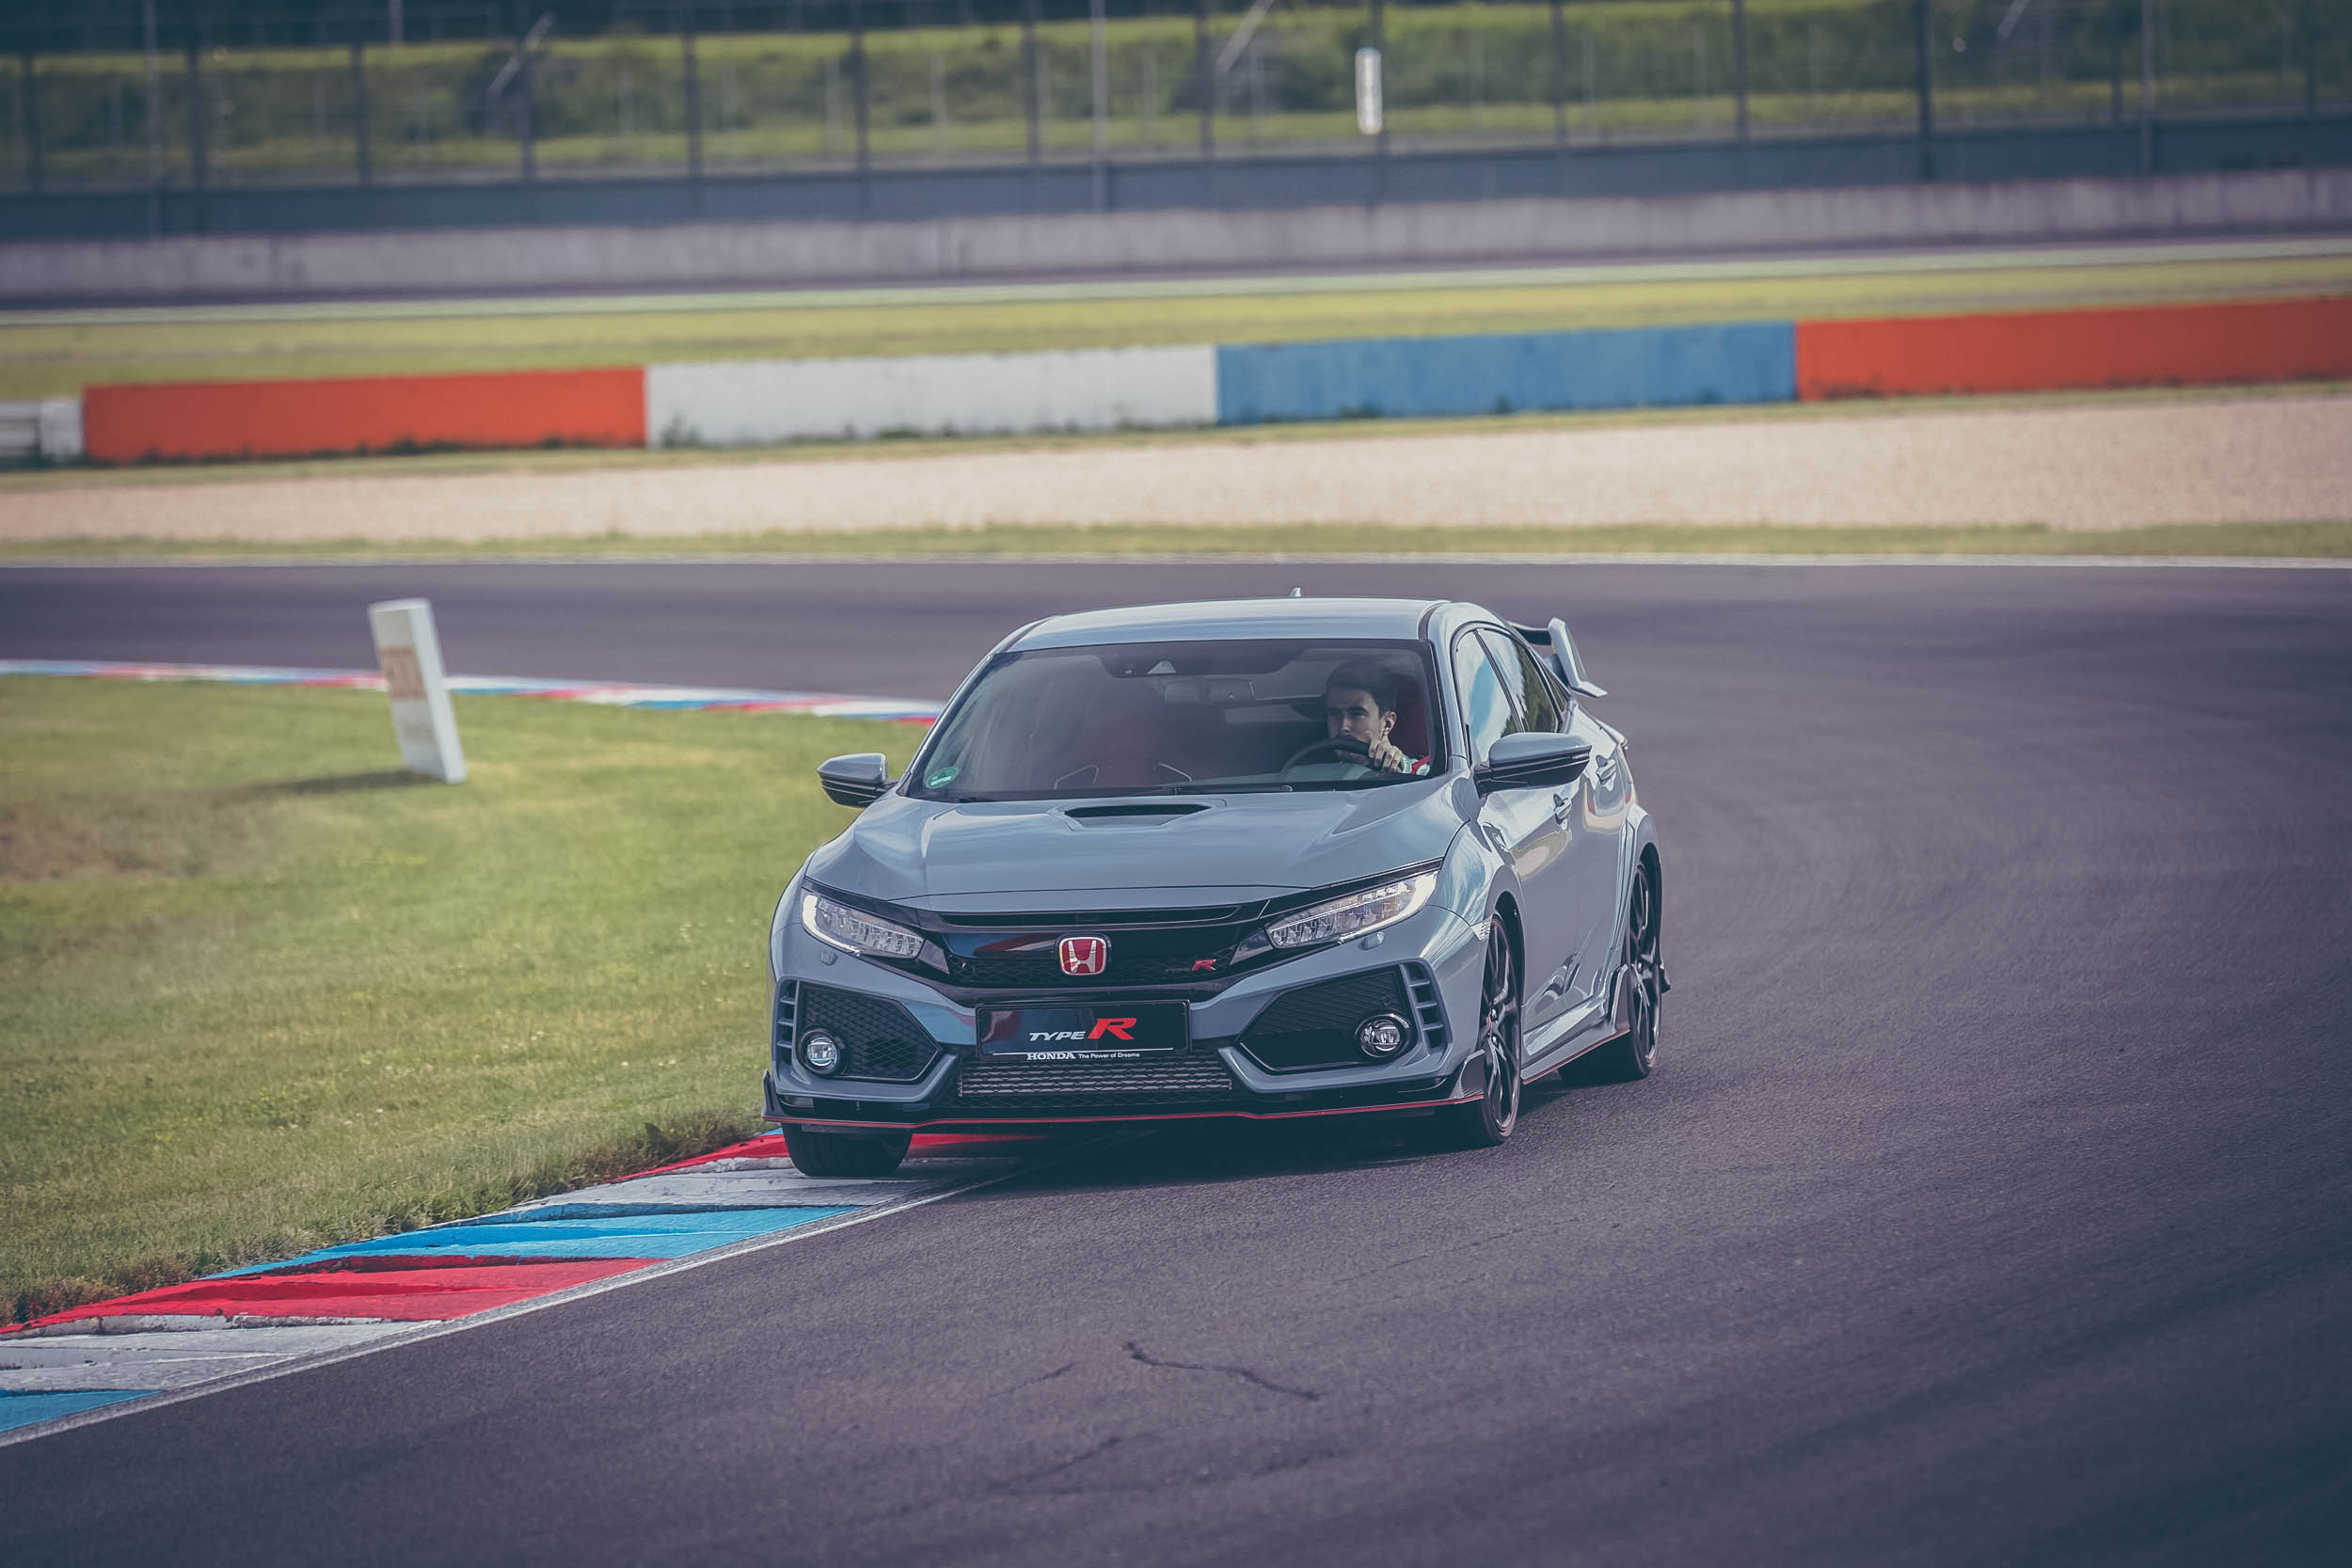 Honda Civic Type R FK8 on track